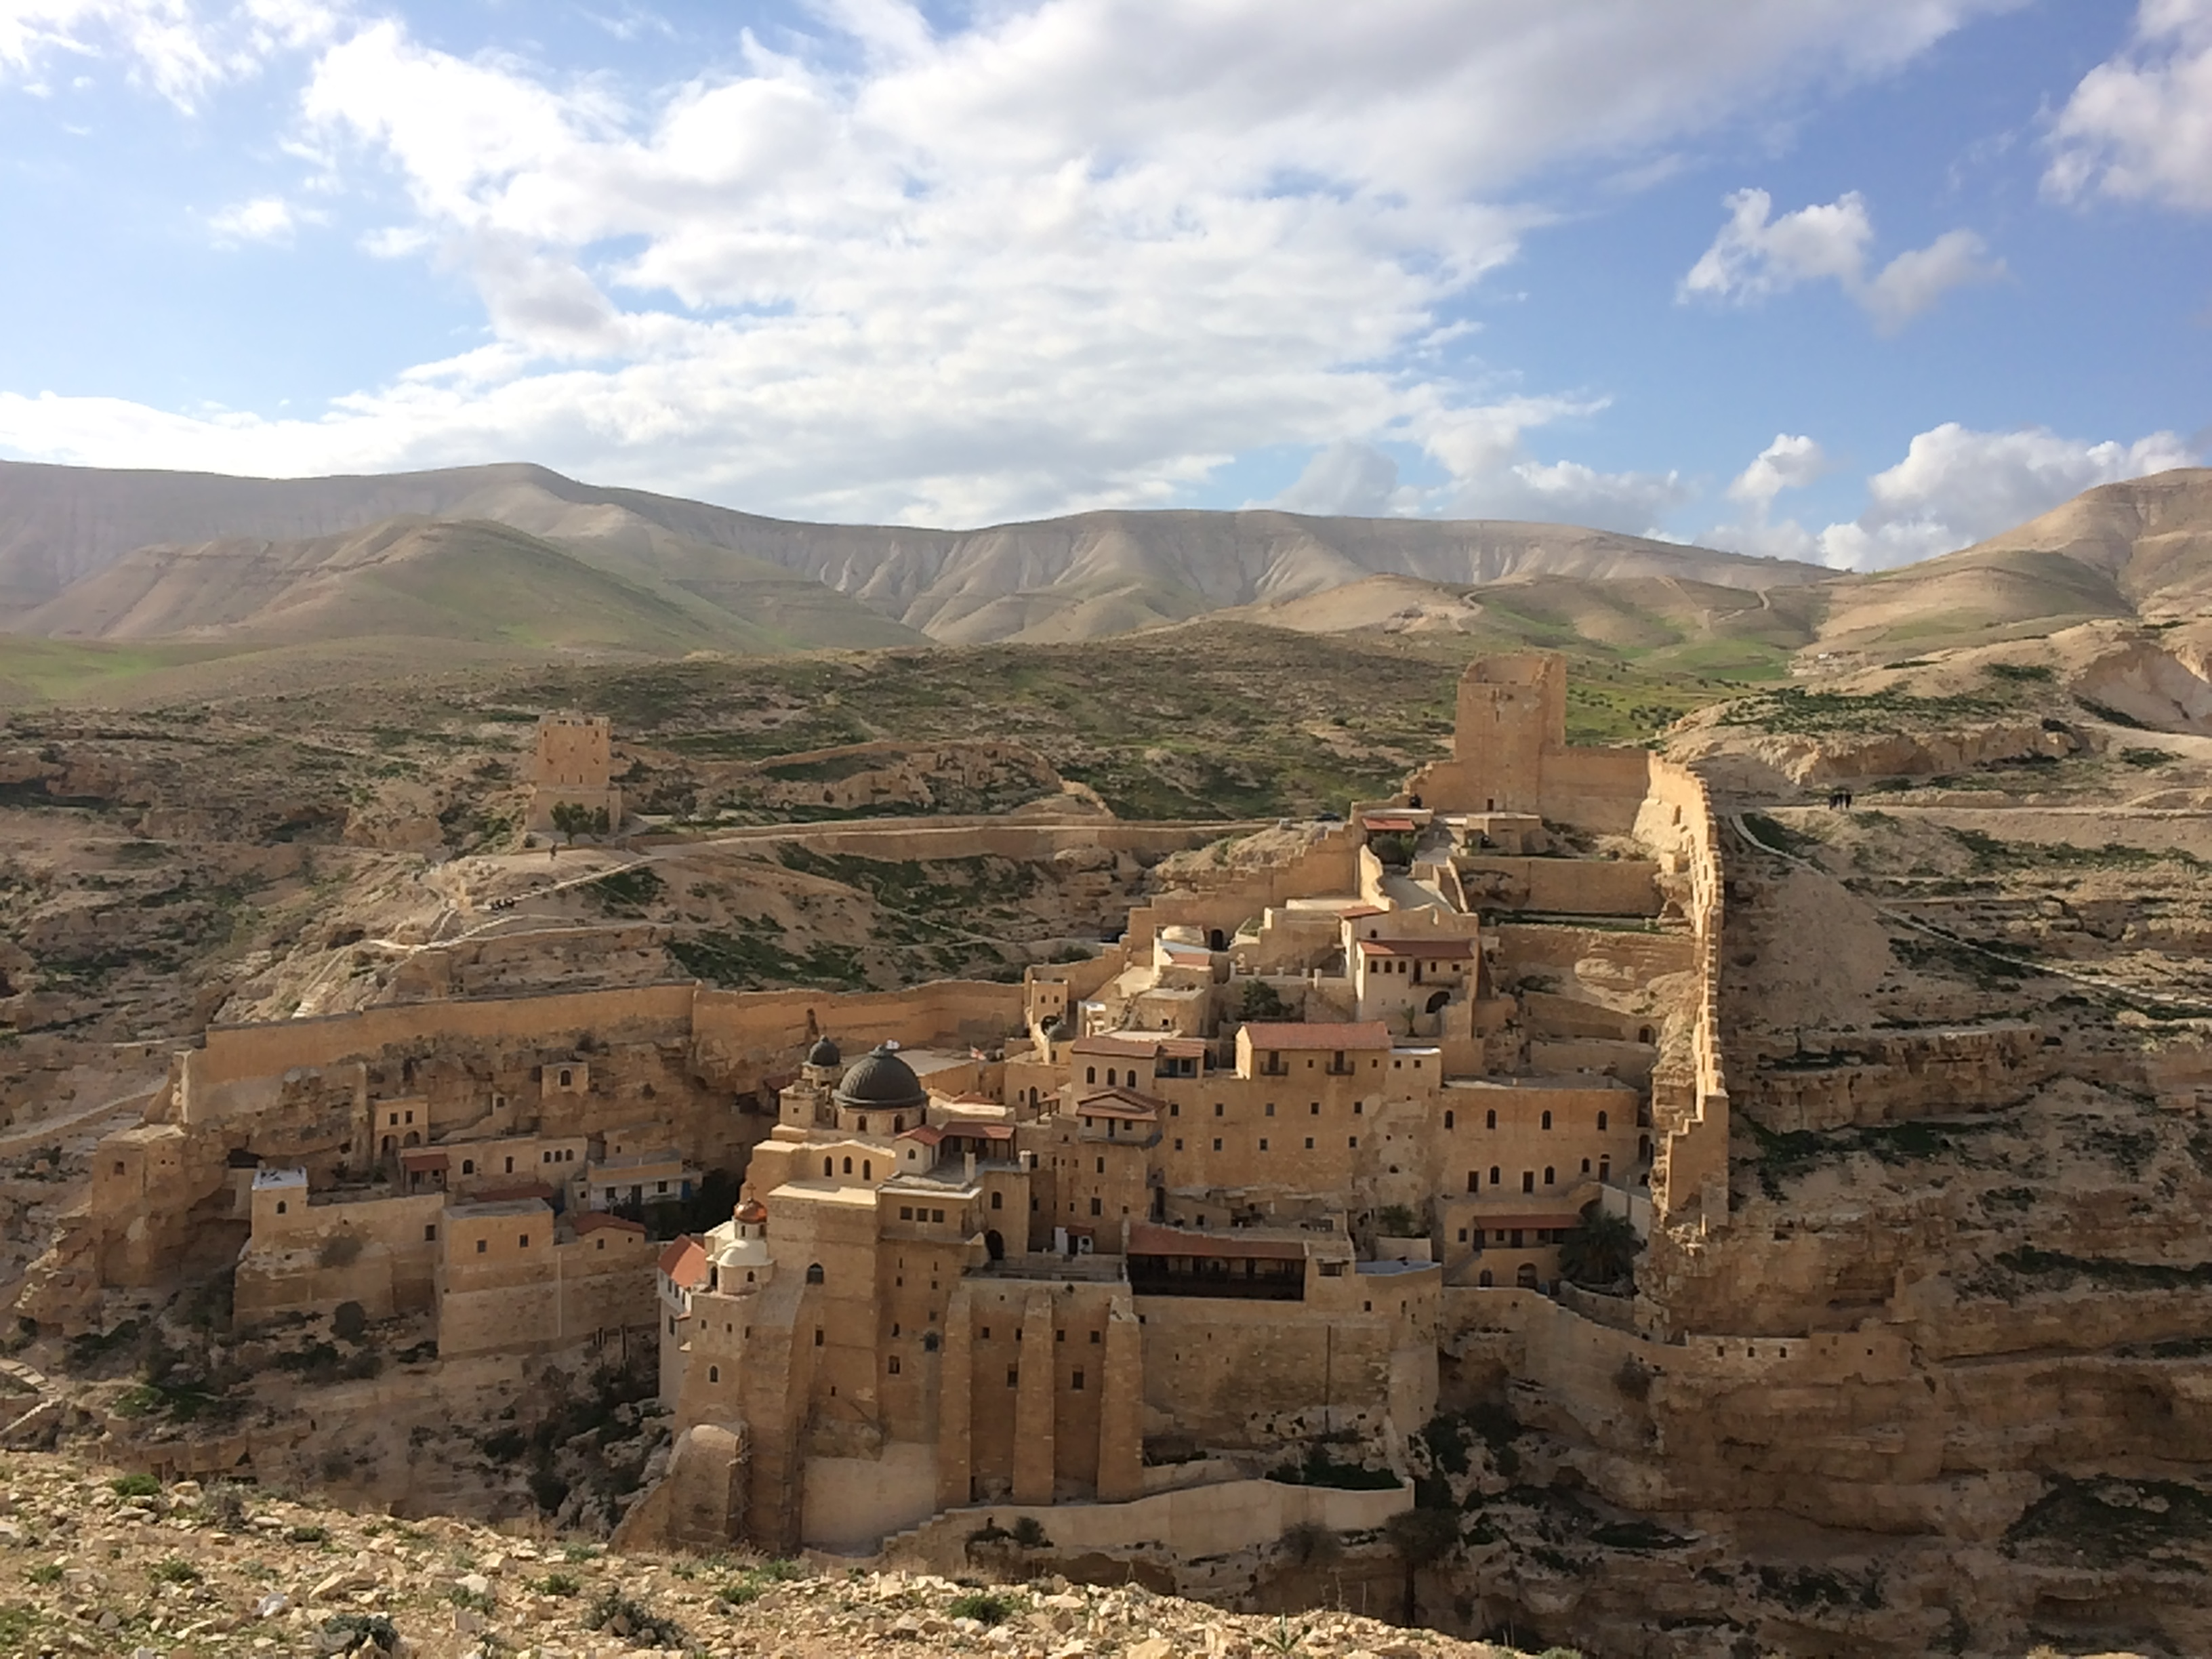 Greek Orthodox monastery of Mar Saba, Judean desert